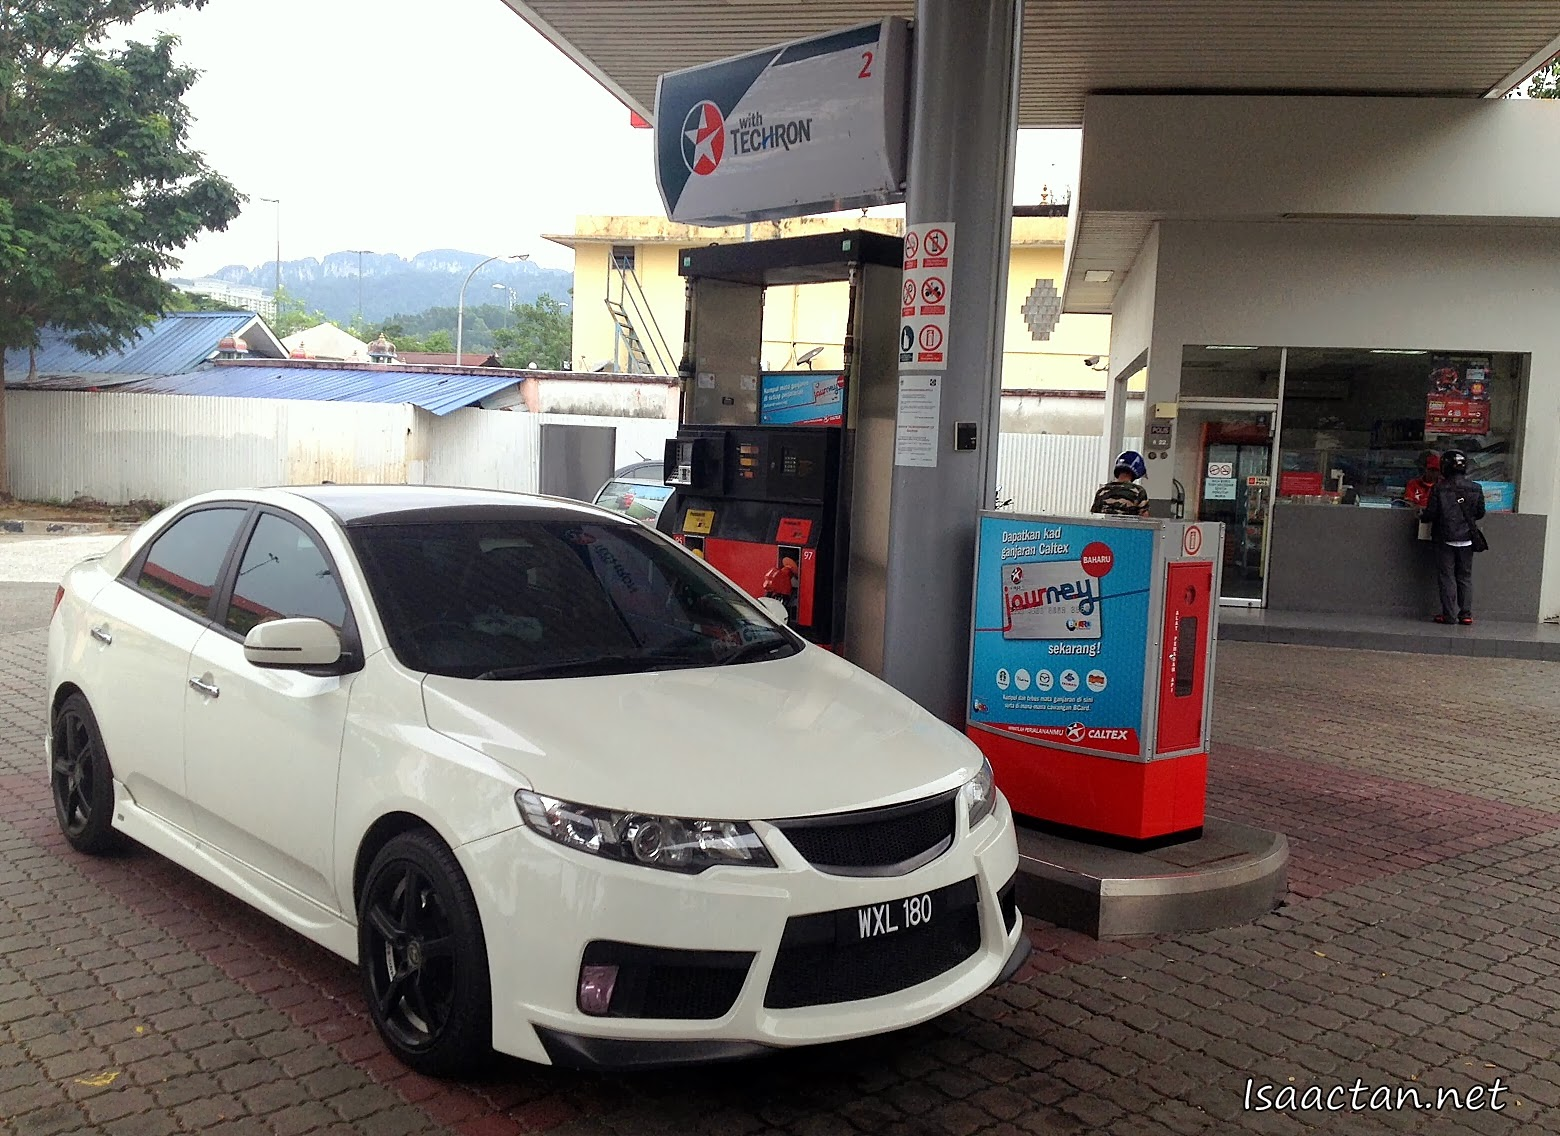 Drove up to the nearest Caltex station the other day for some petrol